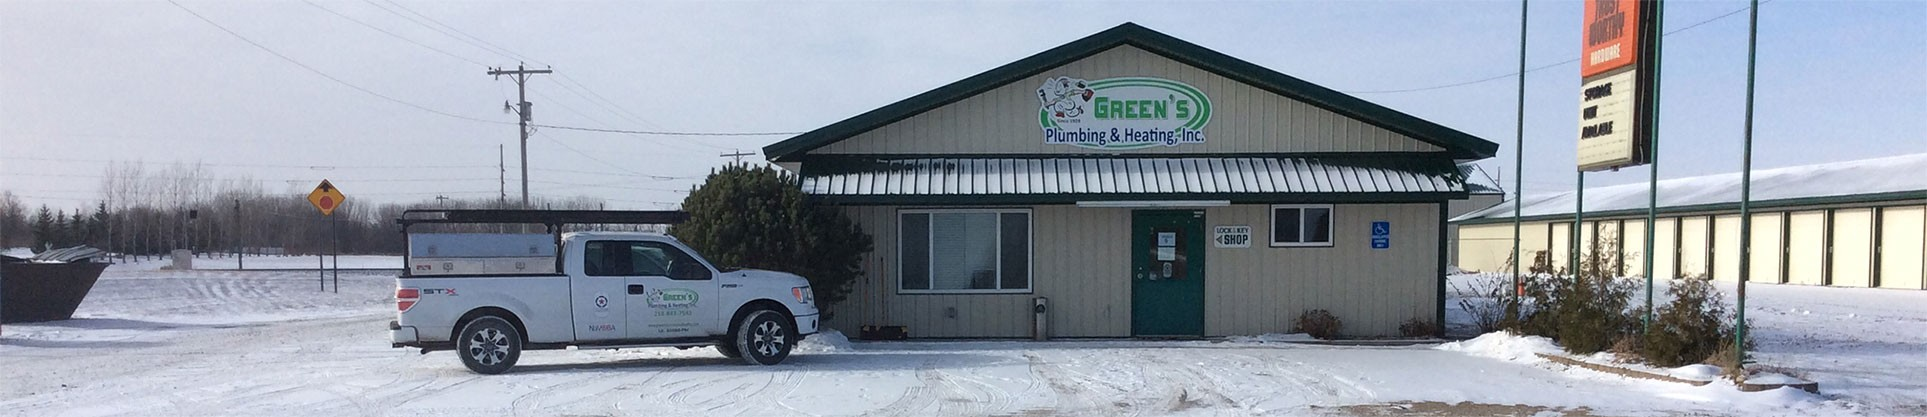 greens-plumbing-and-heating-banner